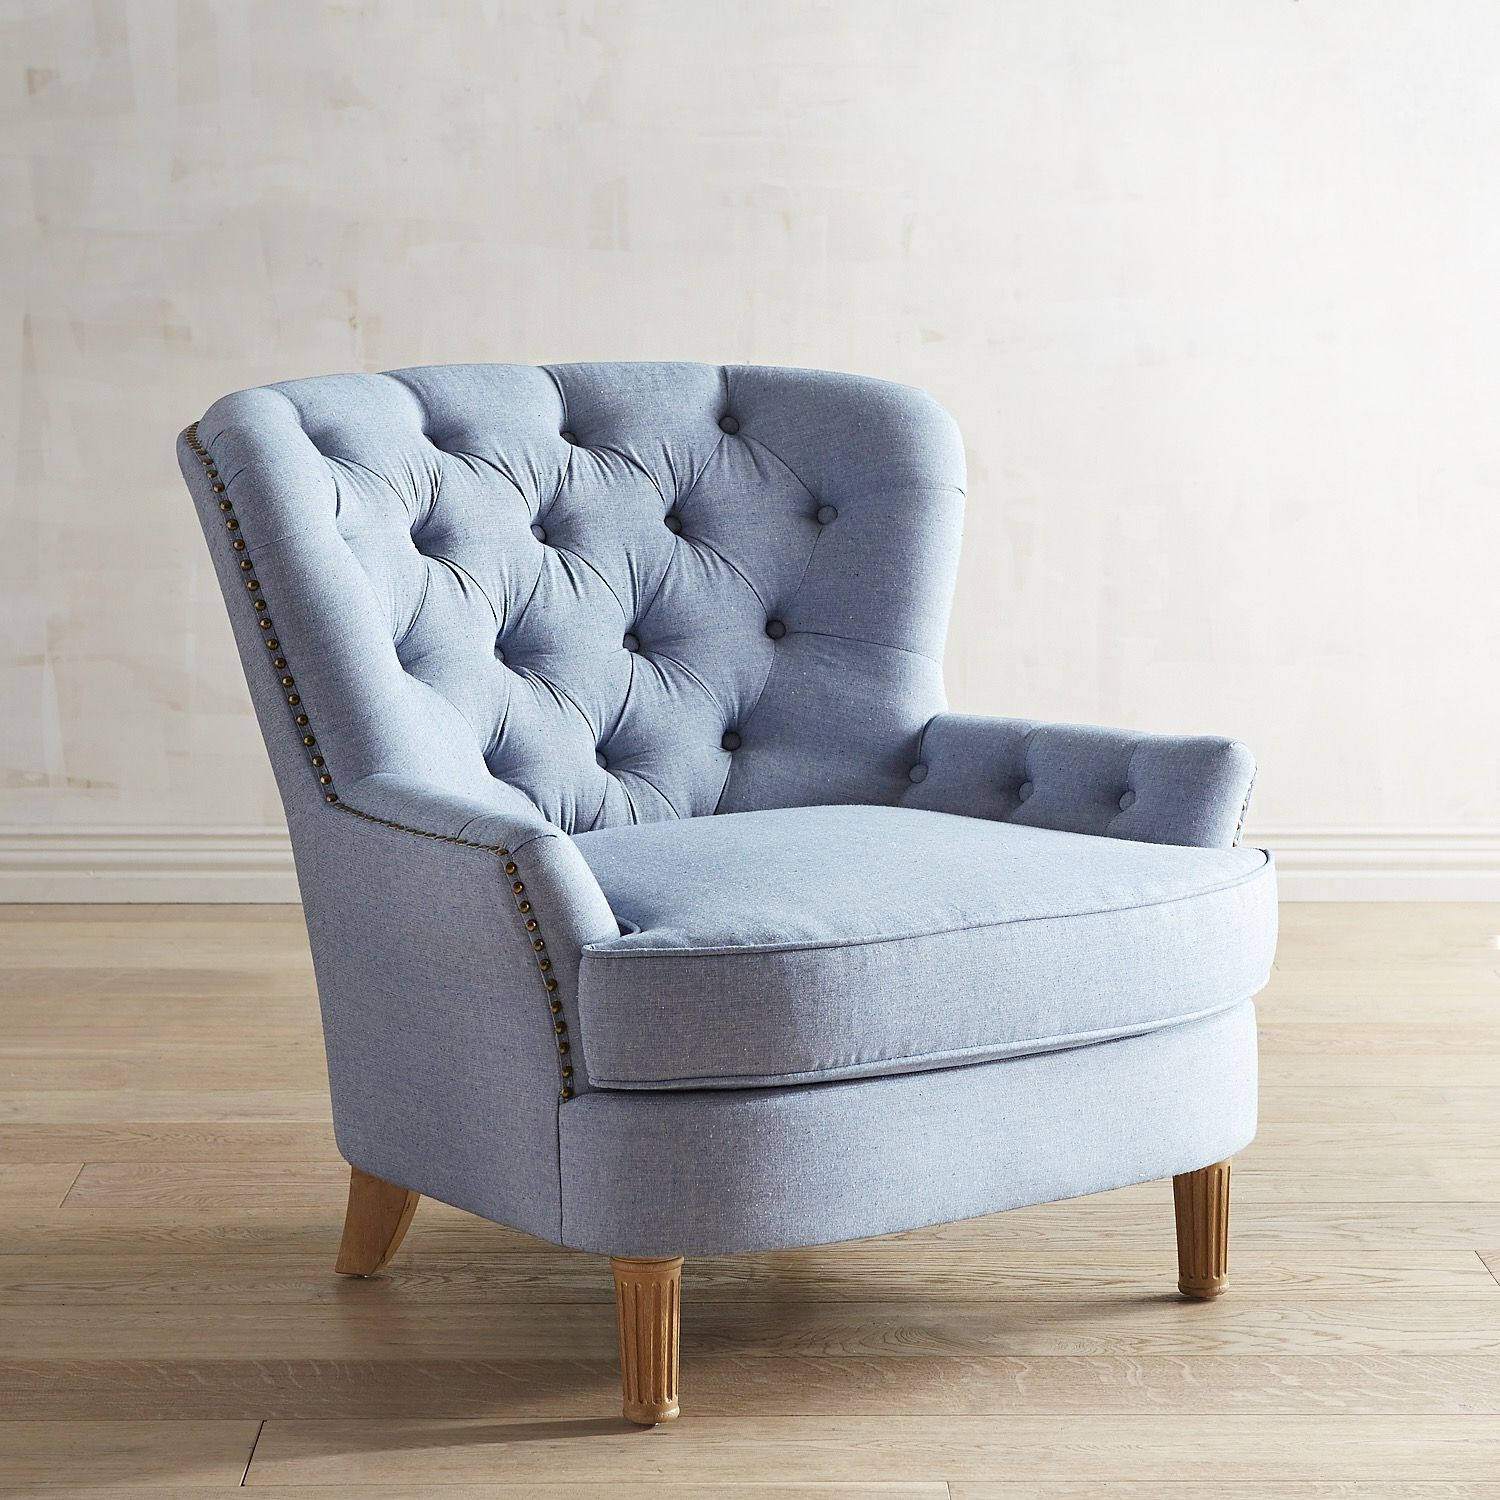 Awesome Eliza Chambray Blue Chair